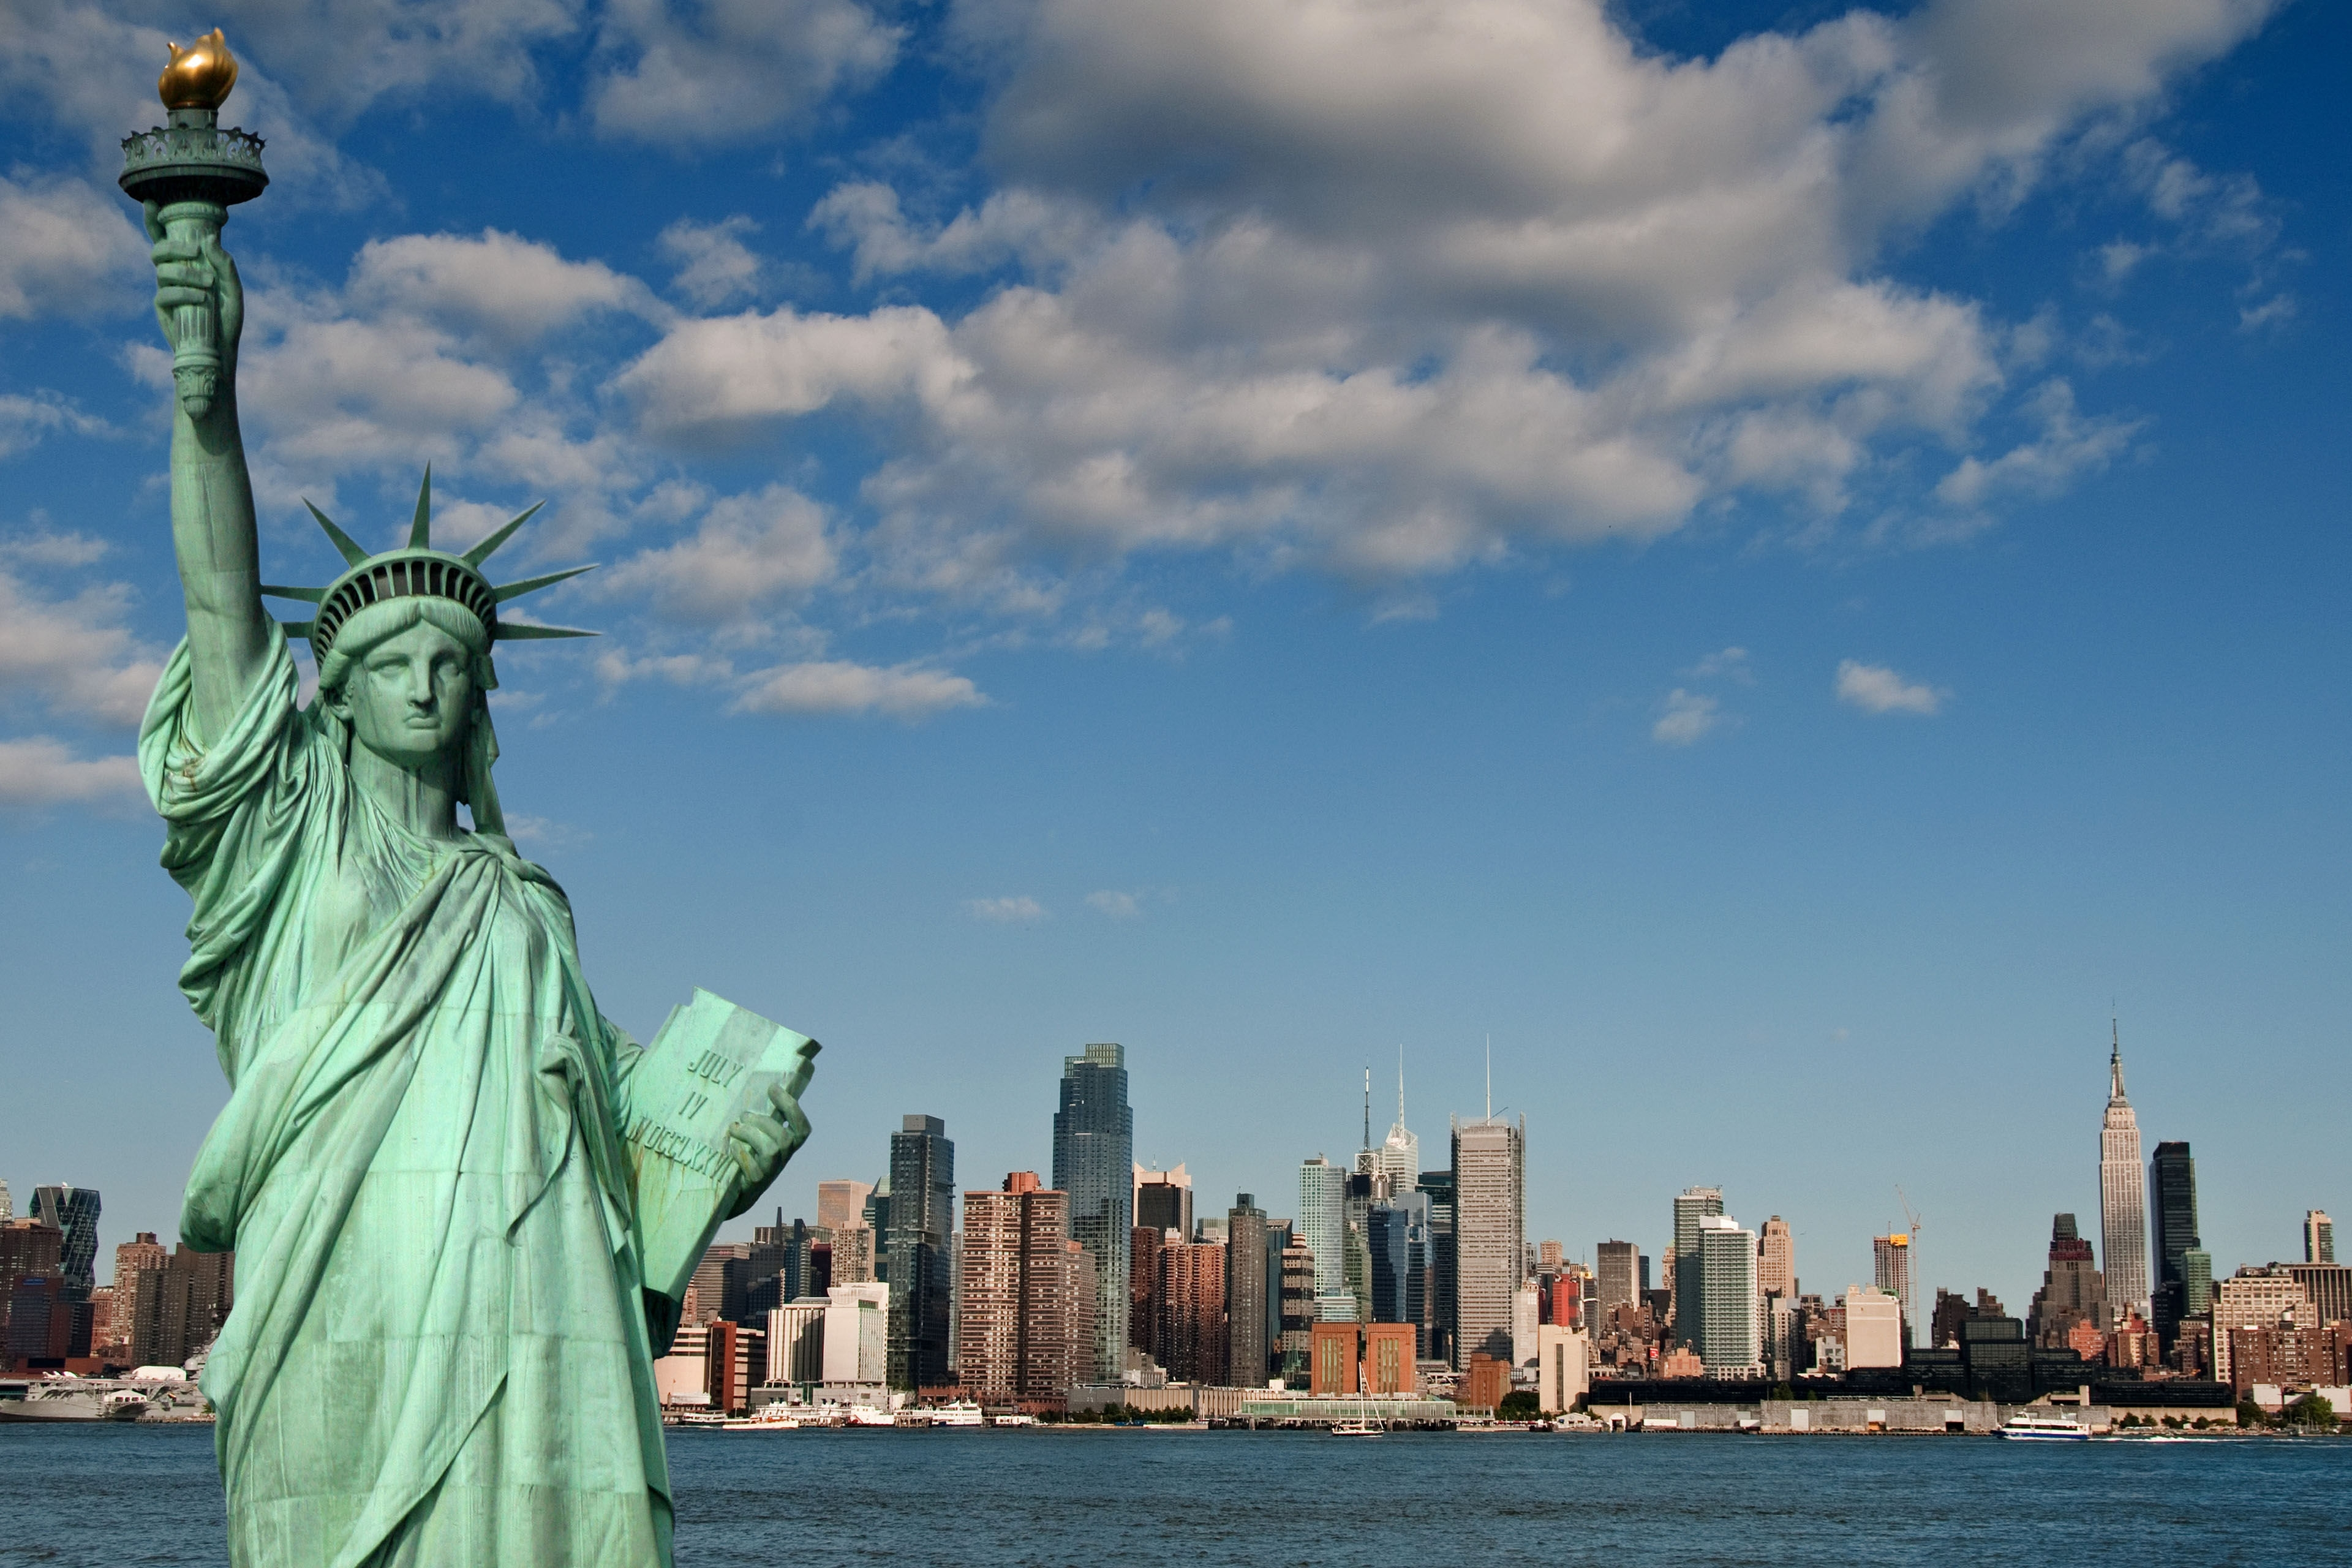 statue of liberty in new york hd wallpaper | pixelstalk